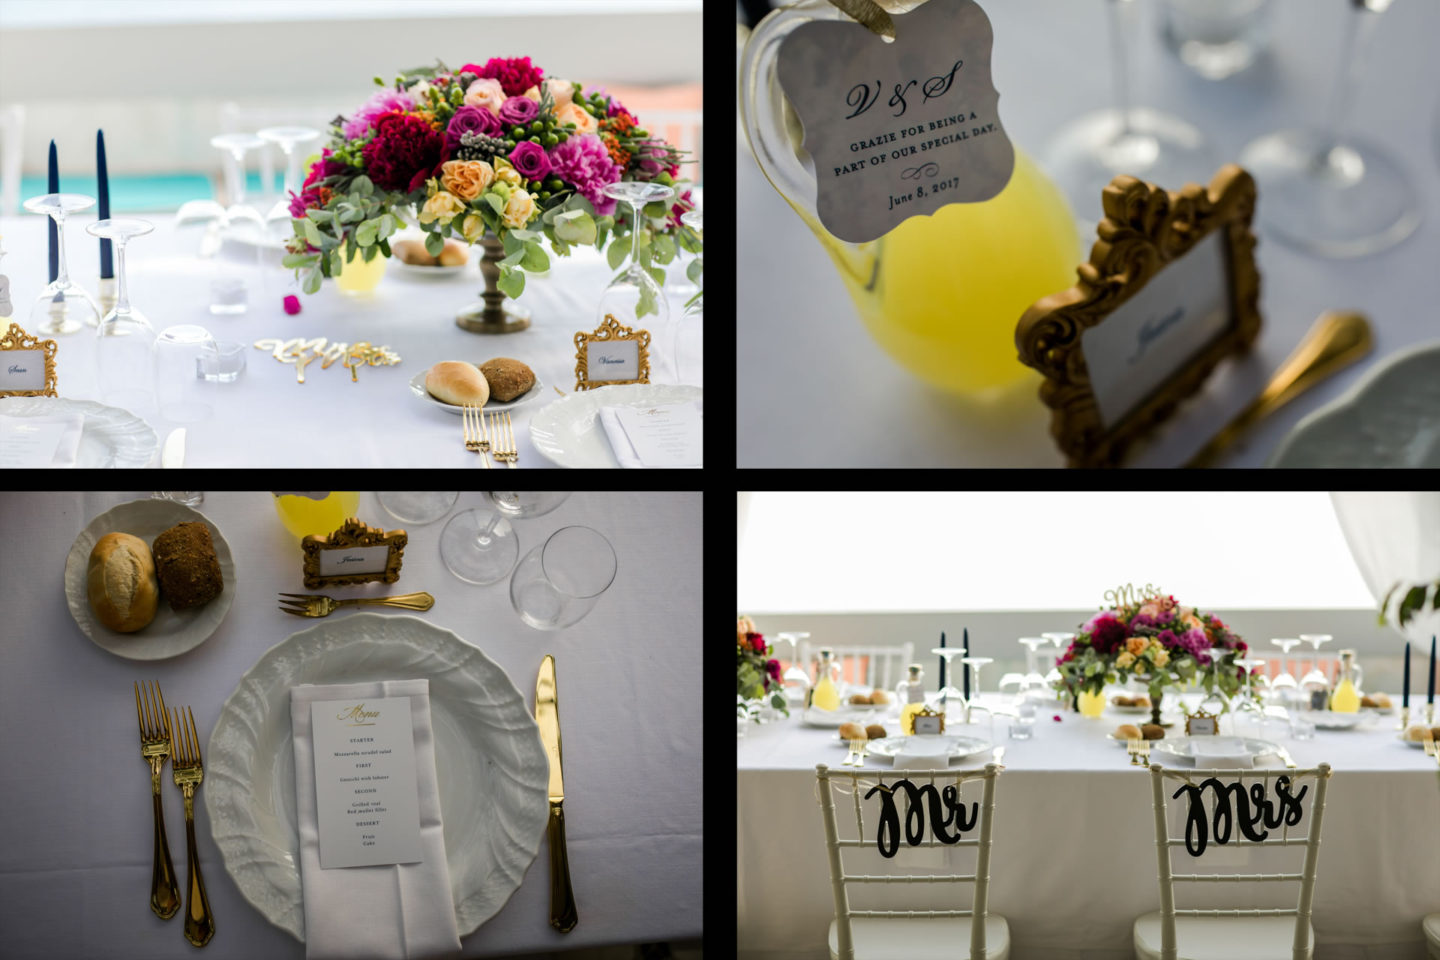 Details - 55 :: Wedding in Positano. Sea and love :: Luxury wedding photography - 54 :: Details - 55